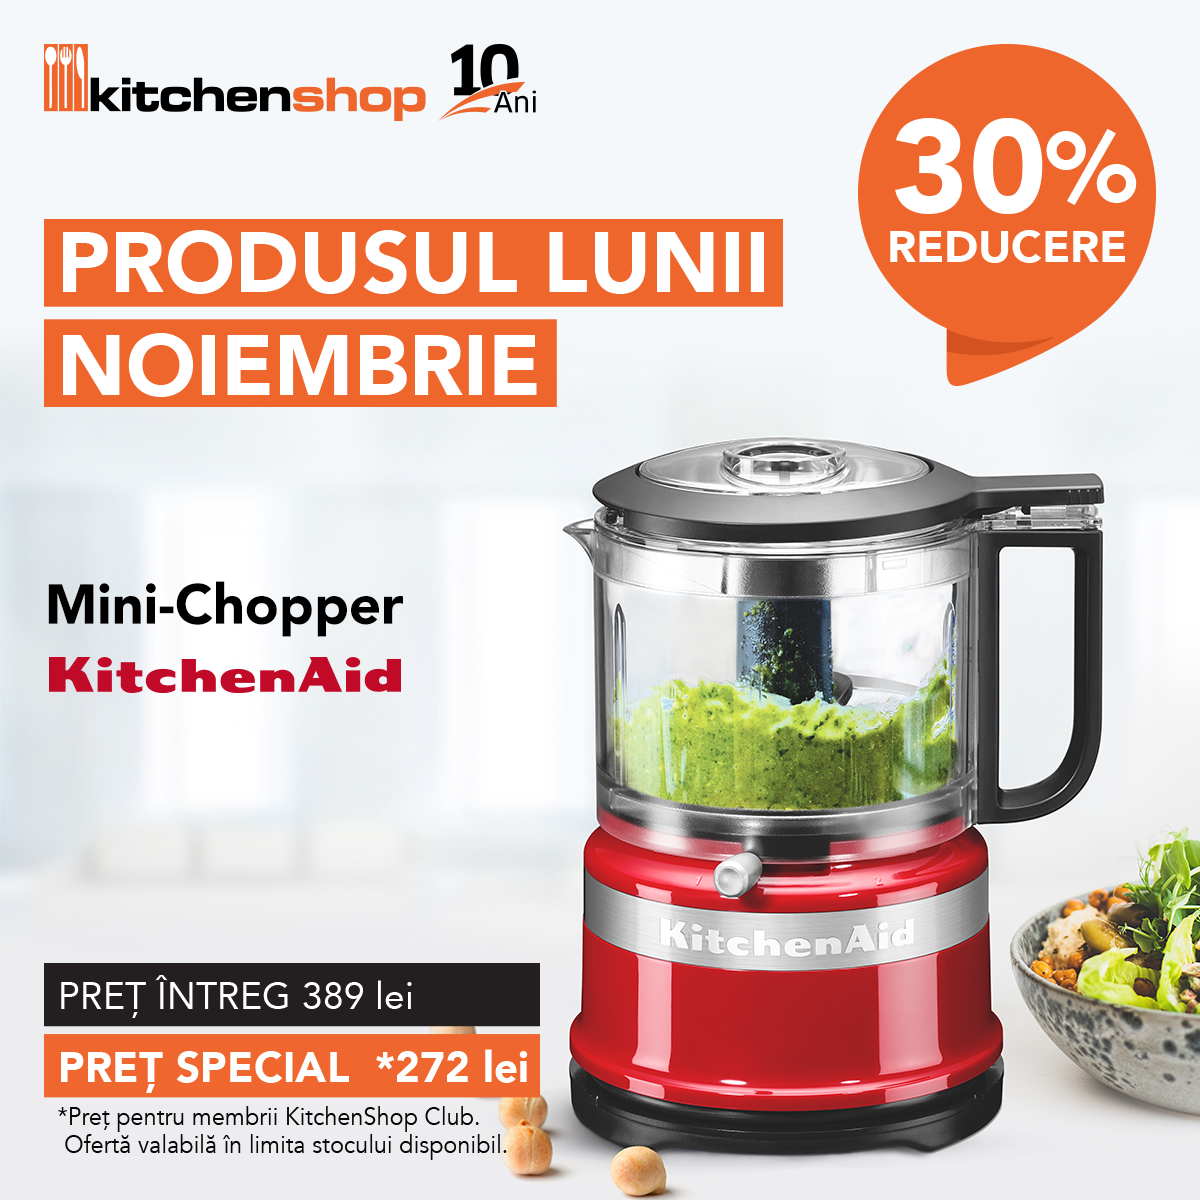 NOIEMBRIE---KitchenAid-in-magazinele-kitchen-shop